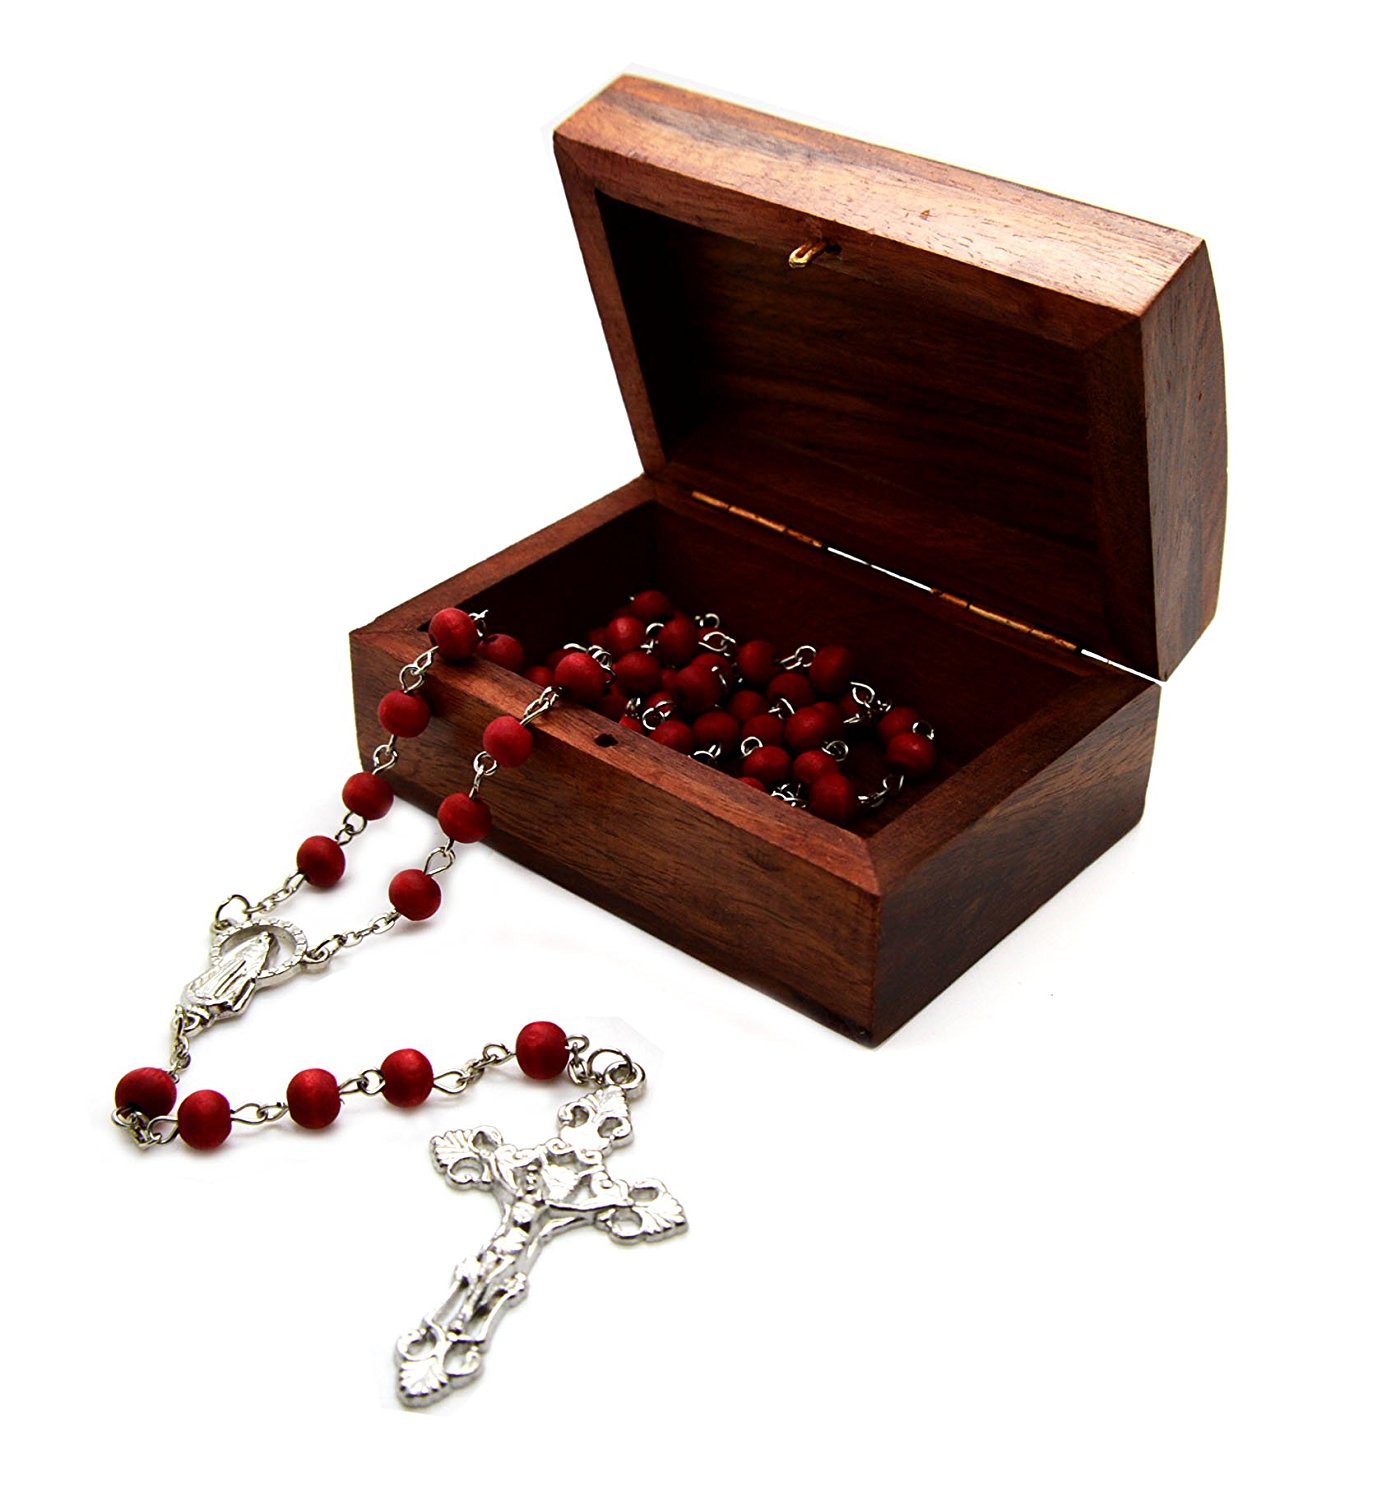 Catholic Rose Scented Wood Carved Rose Petal Rosary 7 Mm Bead and Wooden Hand Carved Rosary Box Wood Decorative Box